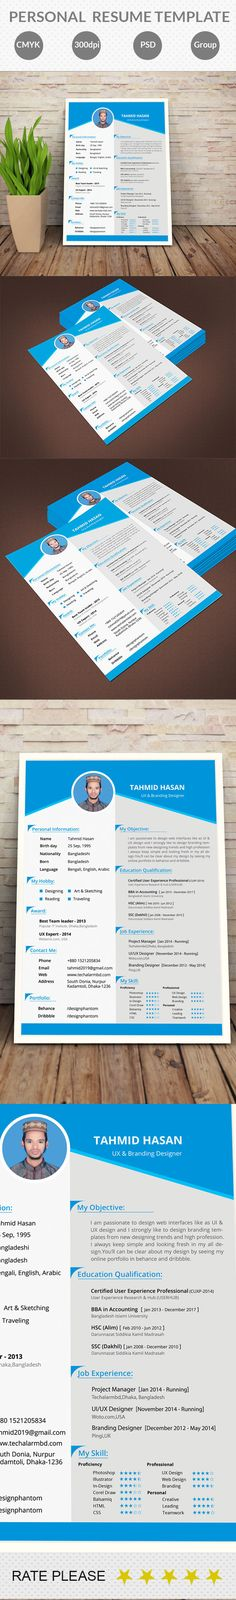 40 Best Free Resume Templates 2017 PSD, AI, DOC Free printable - personal resume templates